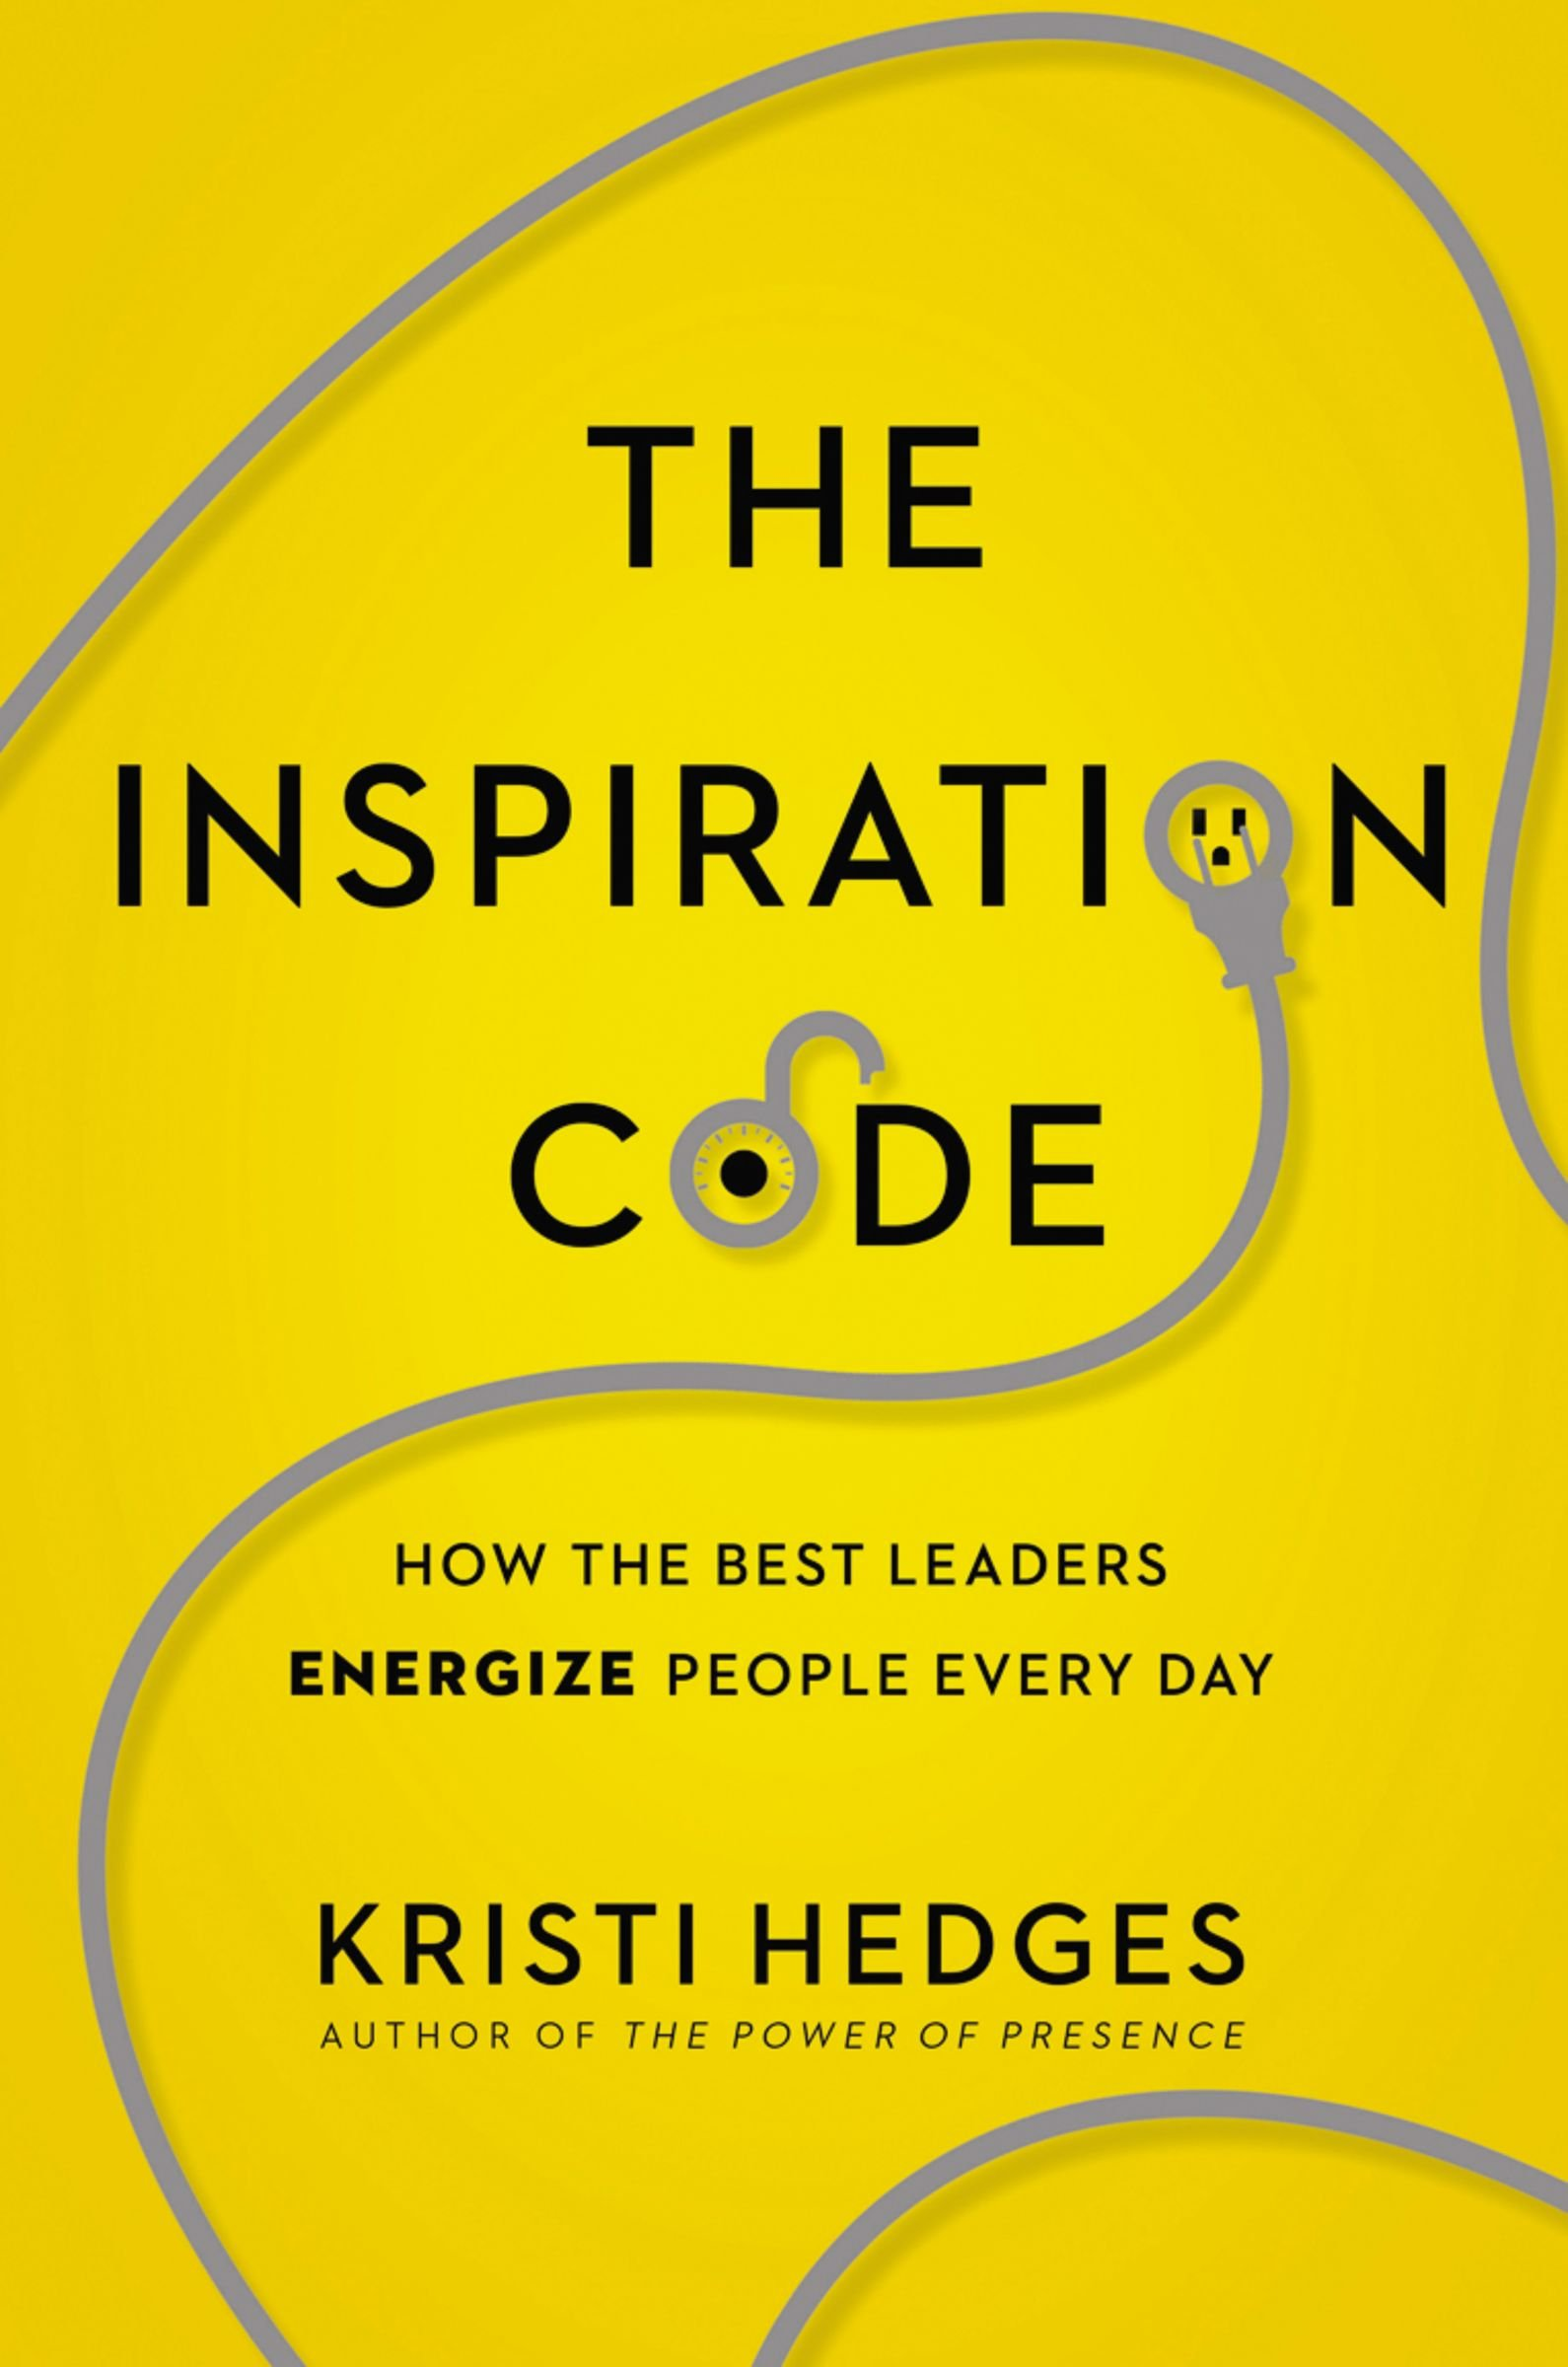 Download The Inspiration Code: How The Best Leaders Energize People Every Day 